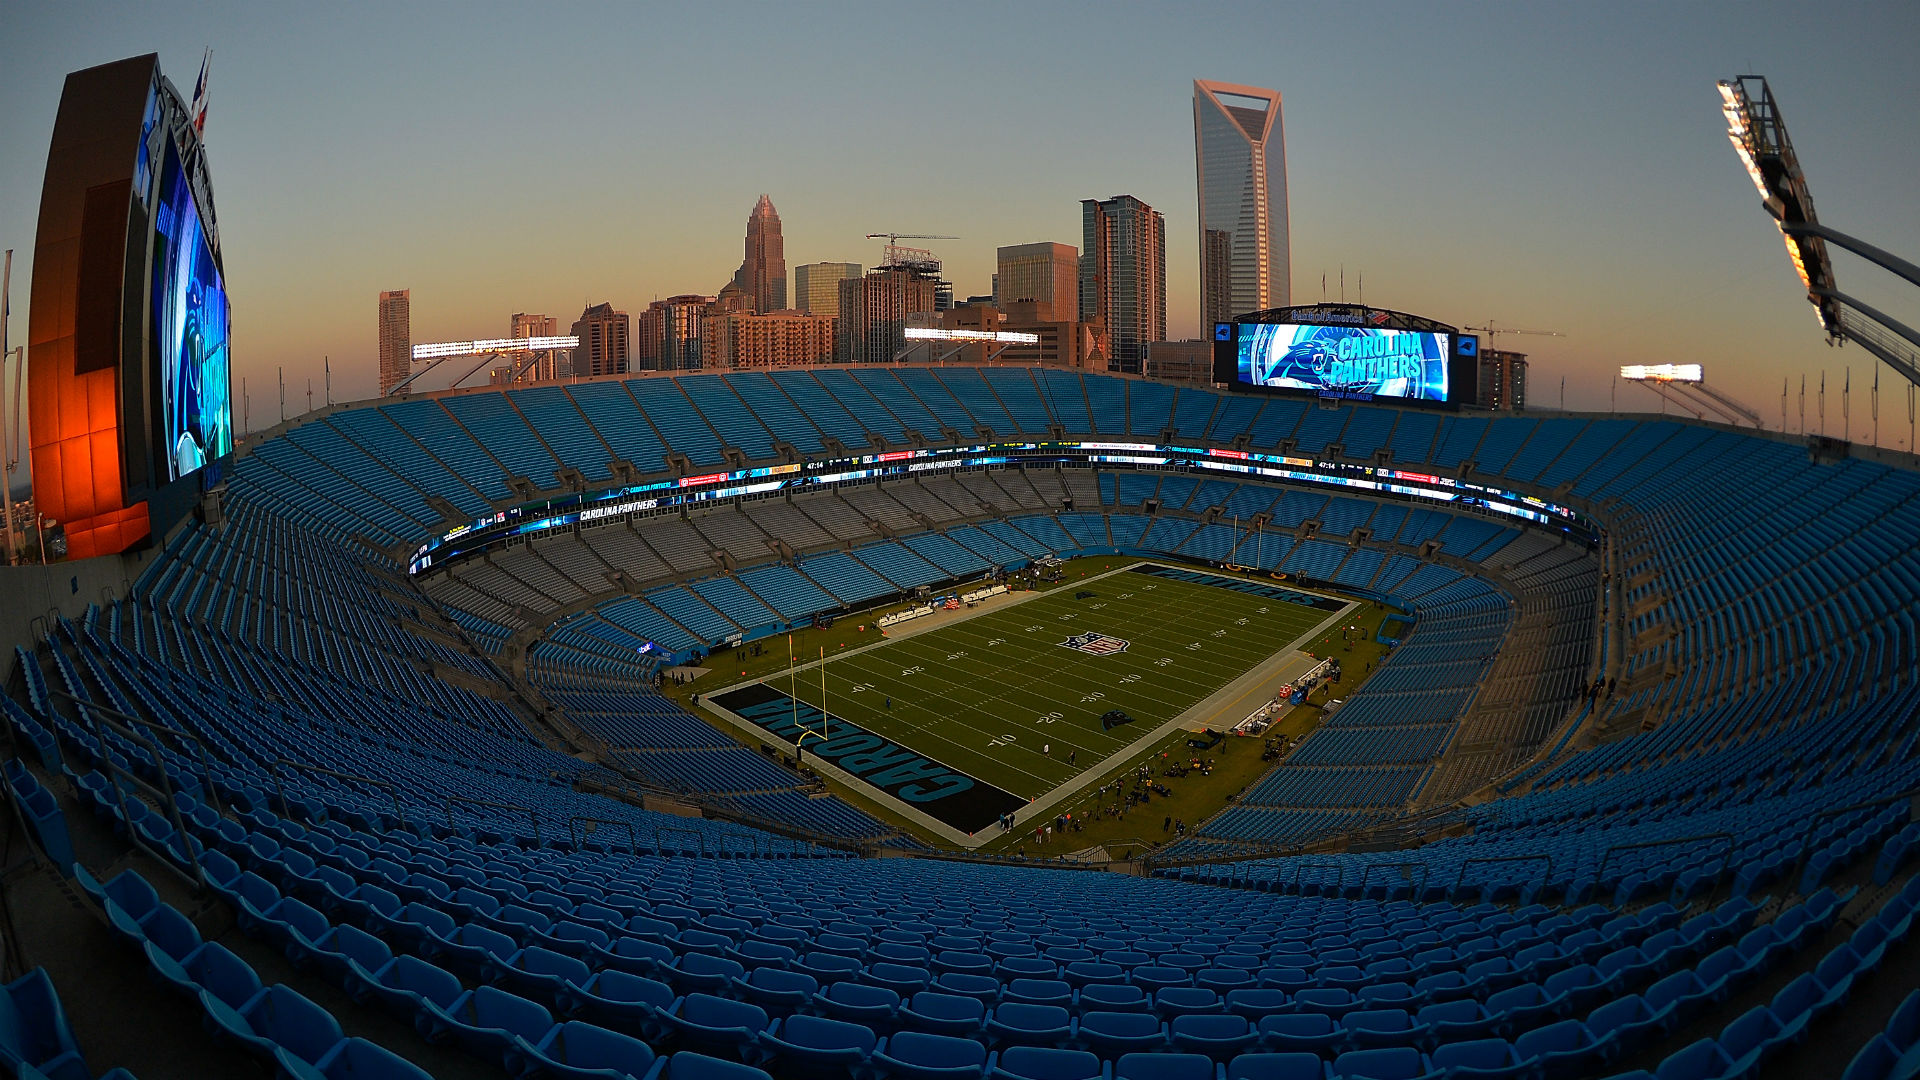 Bank of America Stadium North Carolina